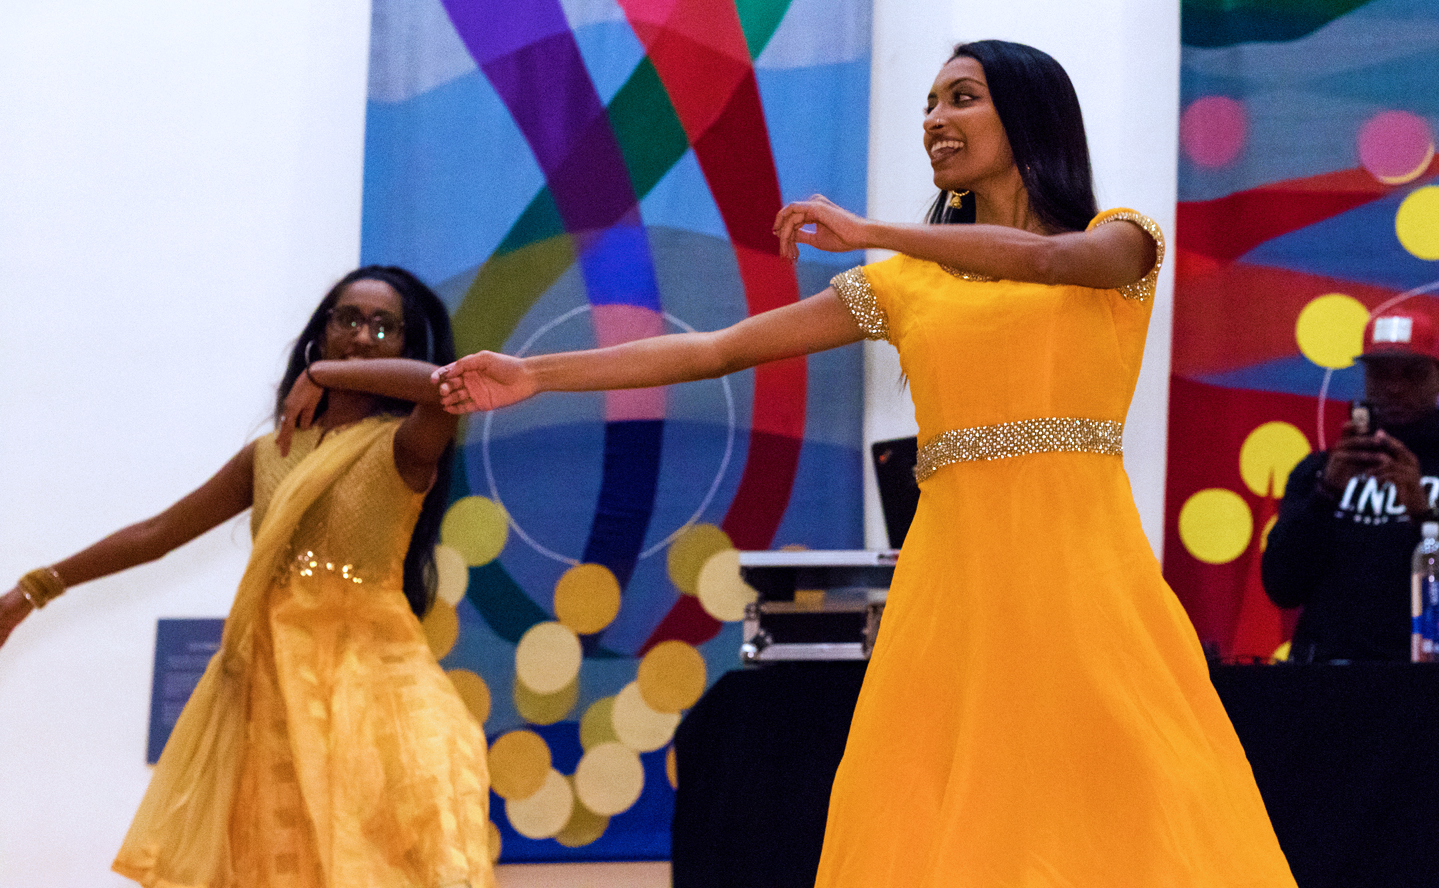 Two women in yellow dresses perform traditional dances at Diwali Festival.